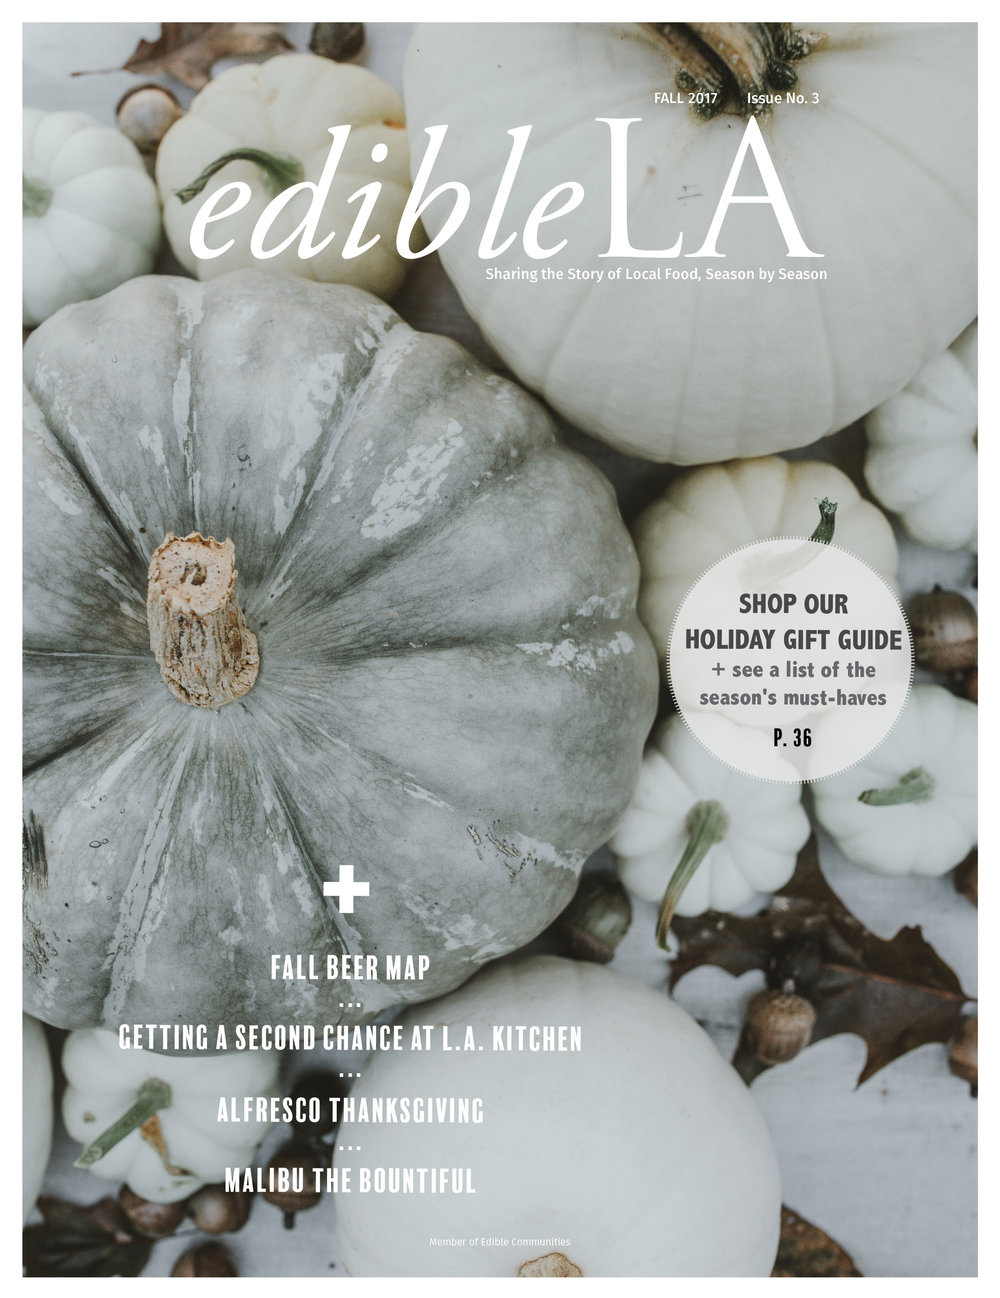 Edible_LA_Fall_2017_Cover.jpg